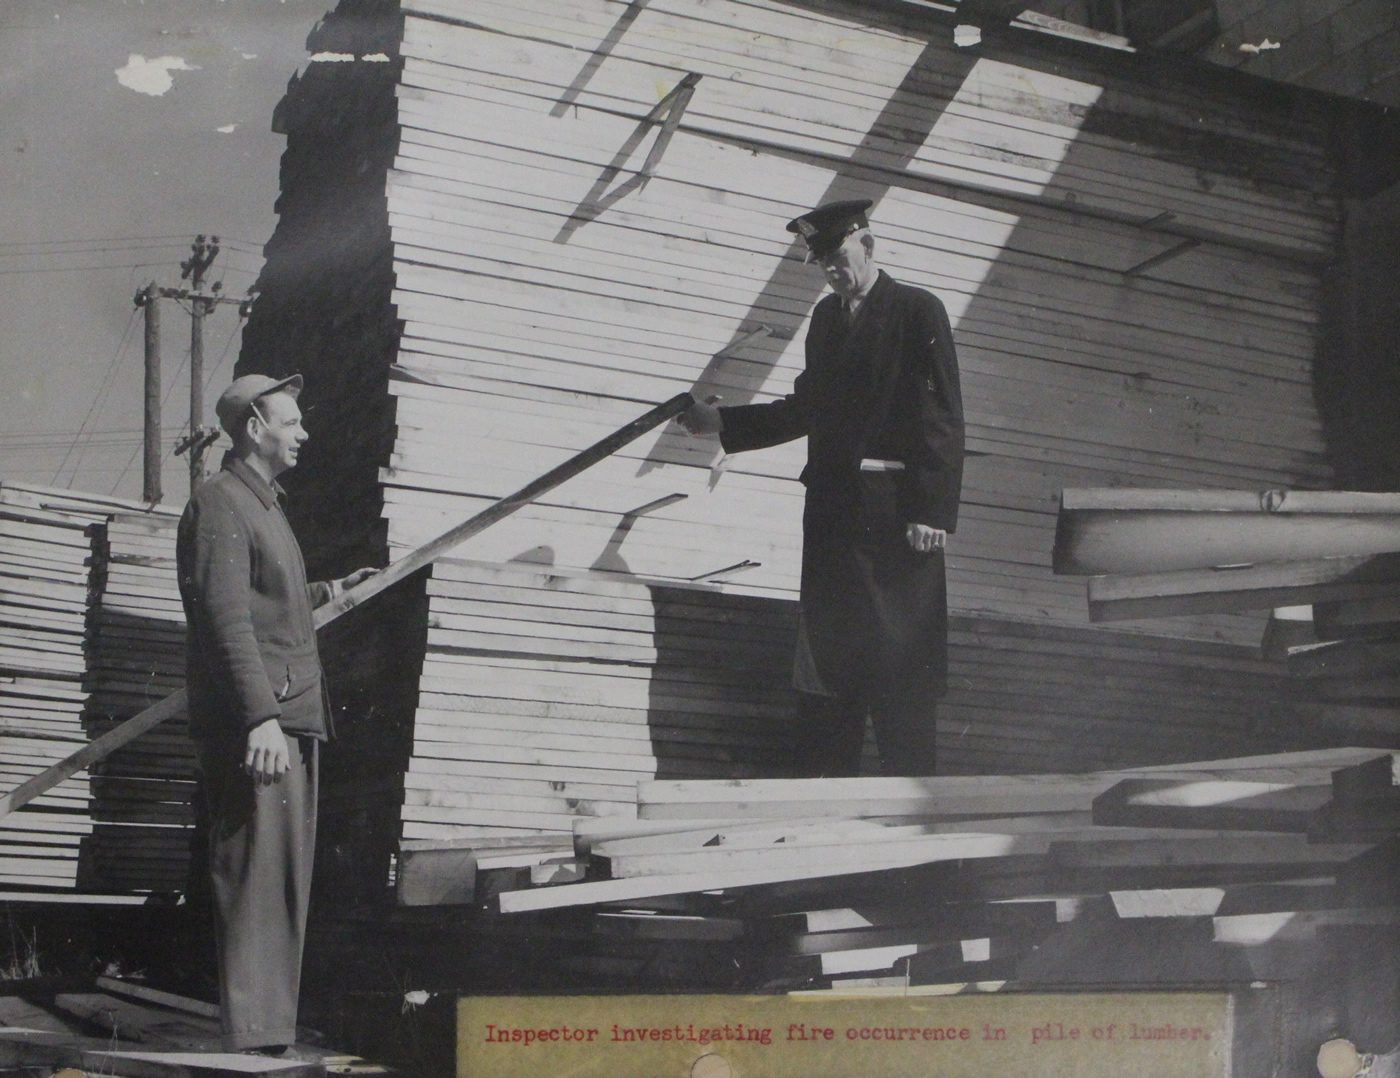 Fire Prevention Officer investigating a fire in a lumber yard